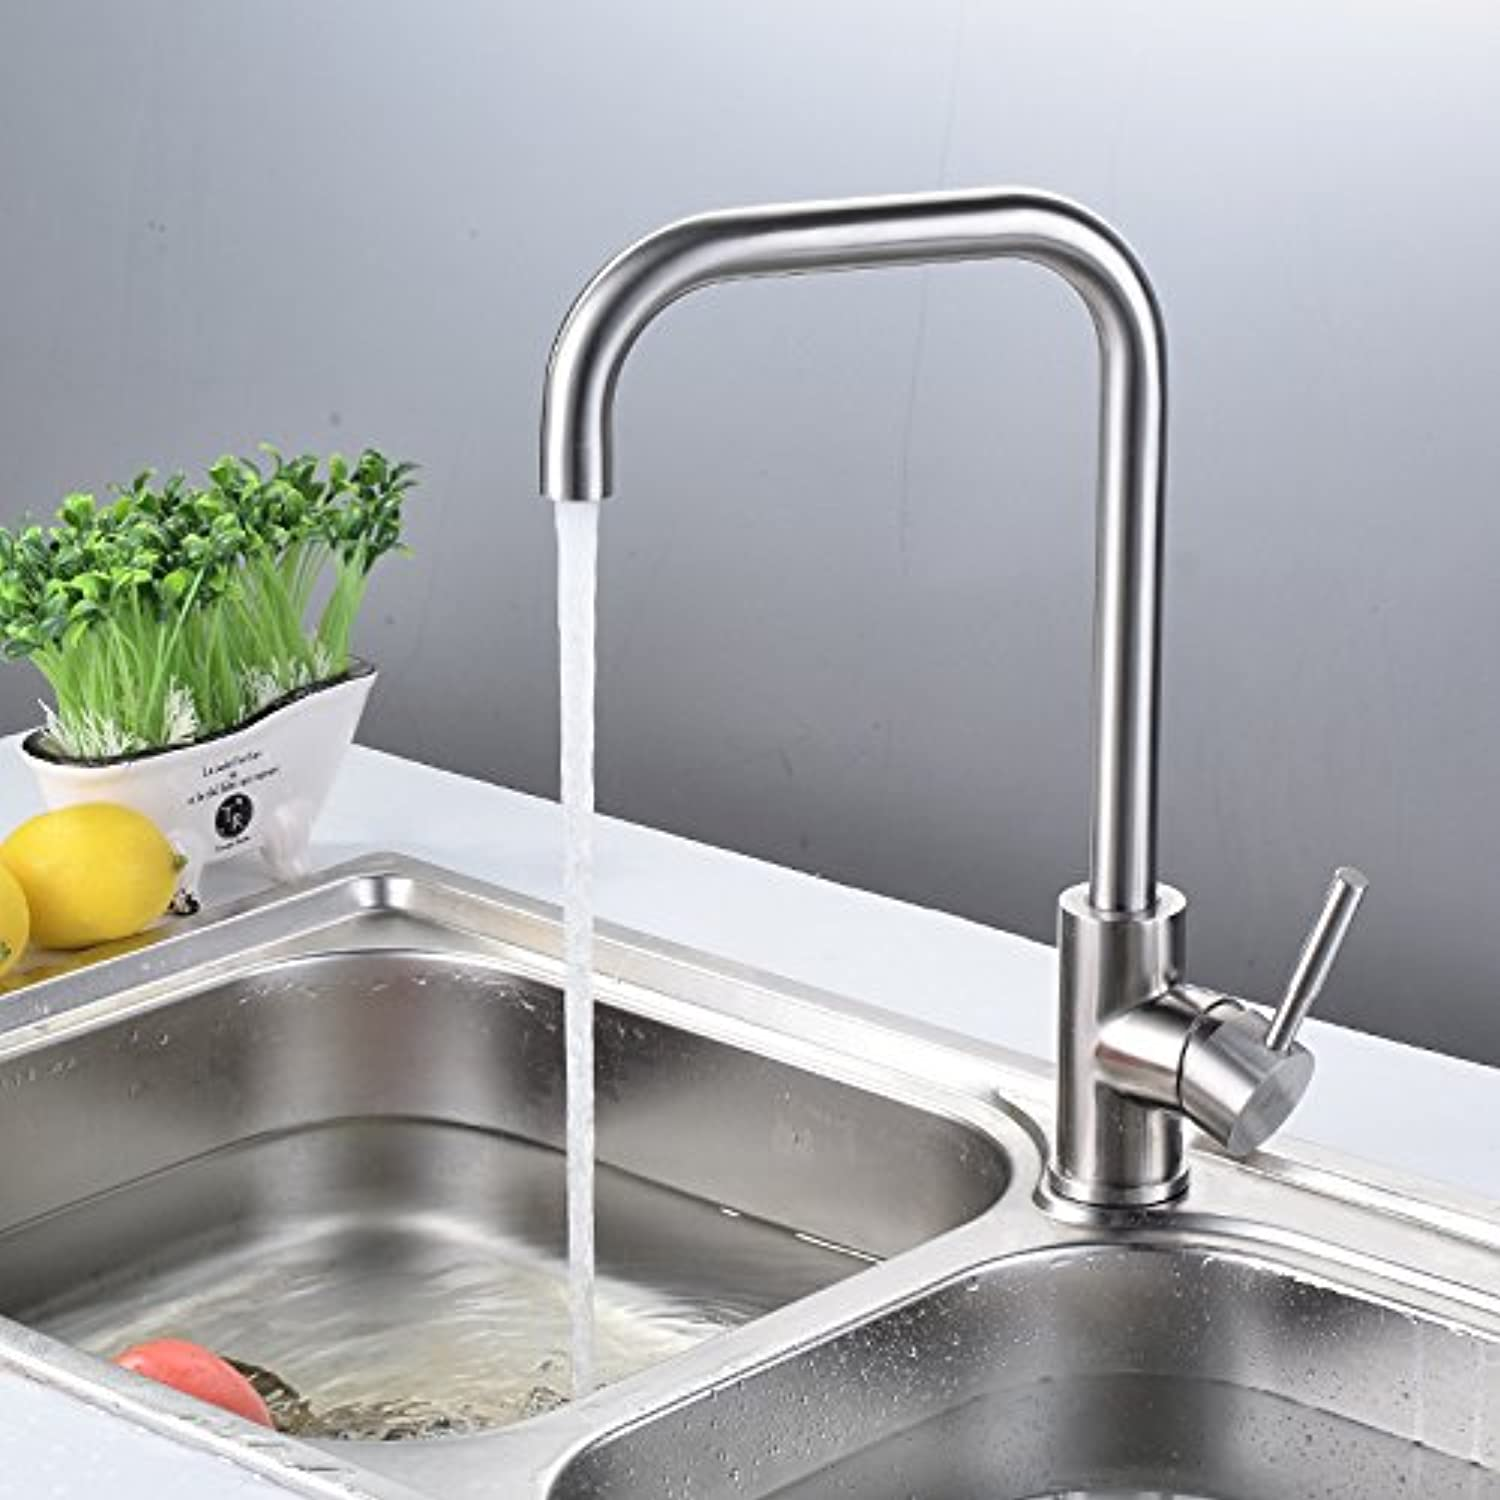 Hlluya Professional Sink Mixer Tap Kitchen Faucet The Kitchen 304 stainless steel hot and cold-water faucet 304 stainless steel swivel kitchen faucet 32mm-50mm